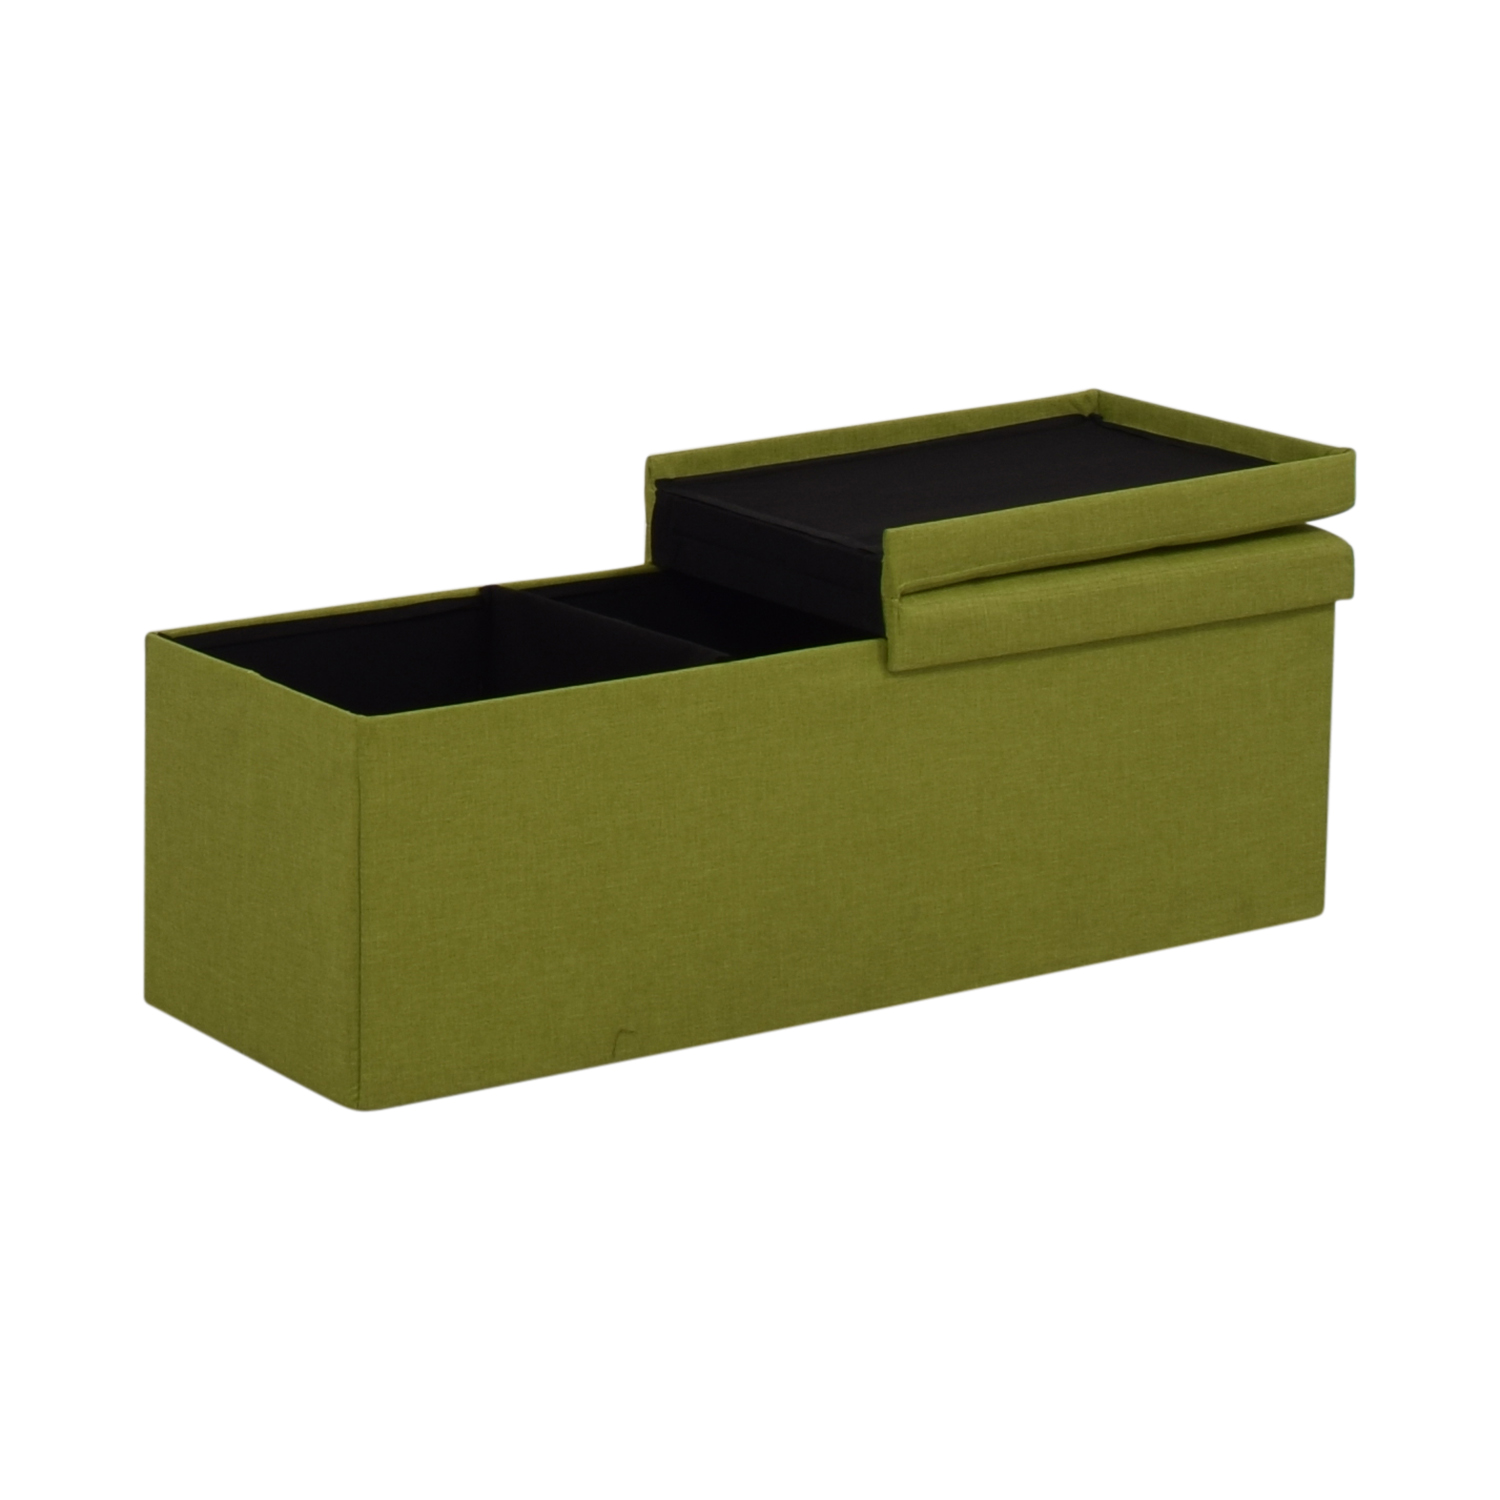 Lime Tufted Storage Bench used